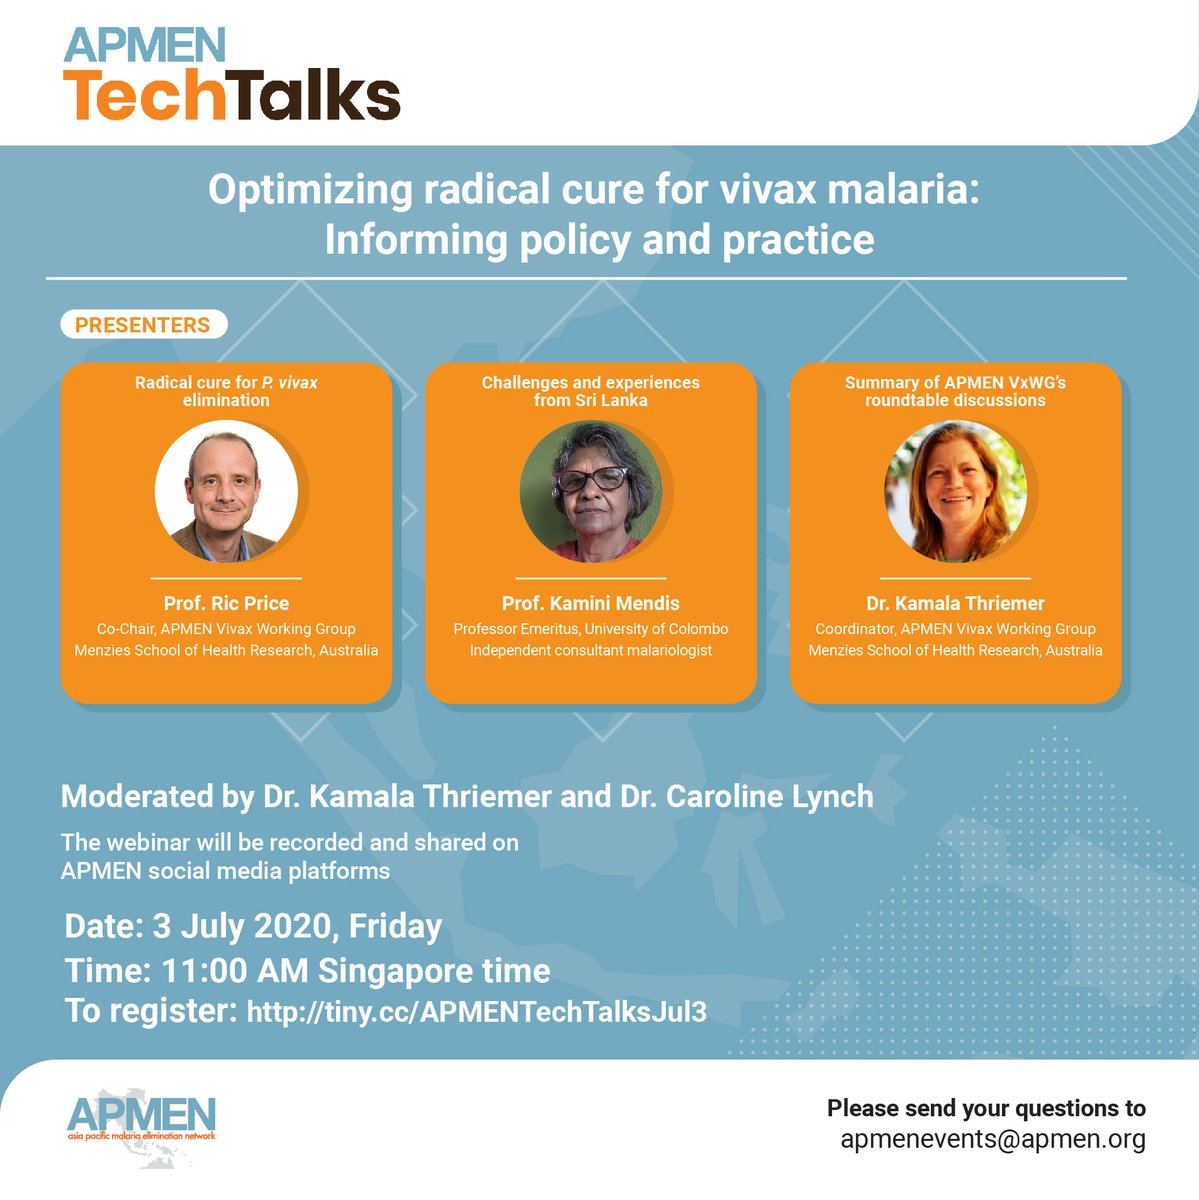 #RT @APLMA_Malaria: RT @APMEN: Join us for a panel discussion on 'Optimizing radical cure for #vivax #malaria: Informing #policy and practice' w/ representatives from https://t.co/QFRSKxAKZK @nhsrcofficial @KKMPutrajaya. Don't miss this 1st APMEN #TechT… https://t.co/XnoeHn2YLu